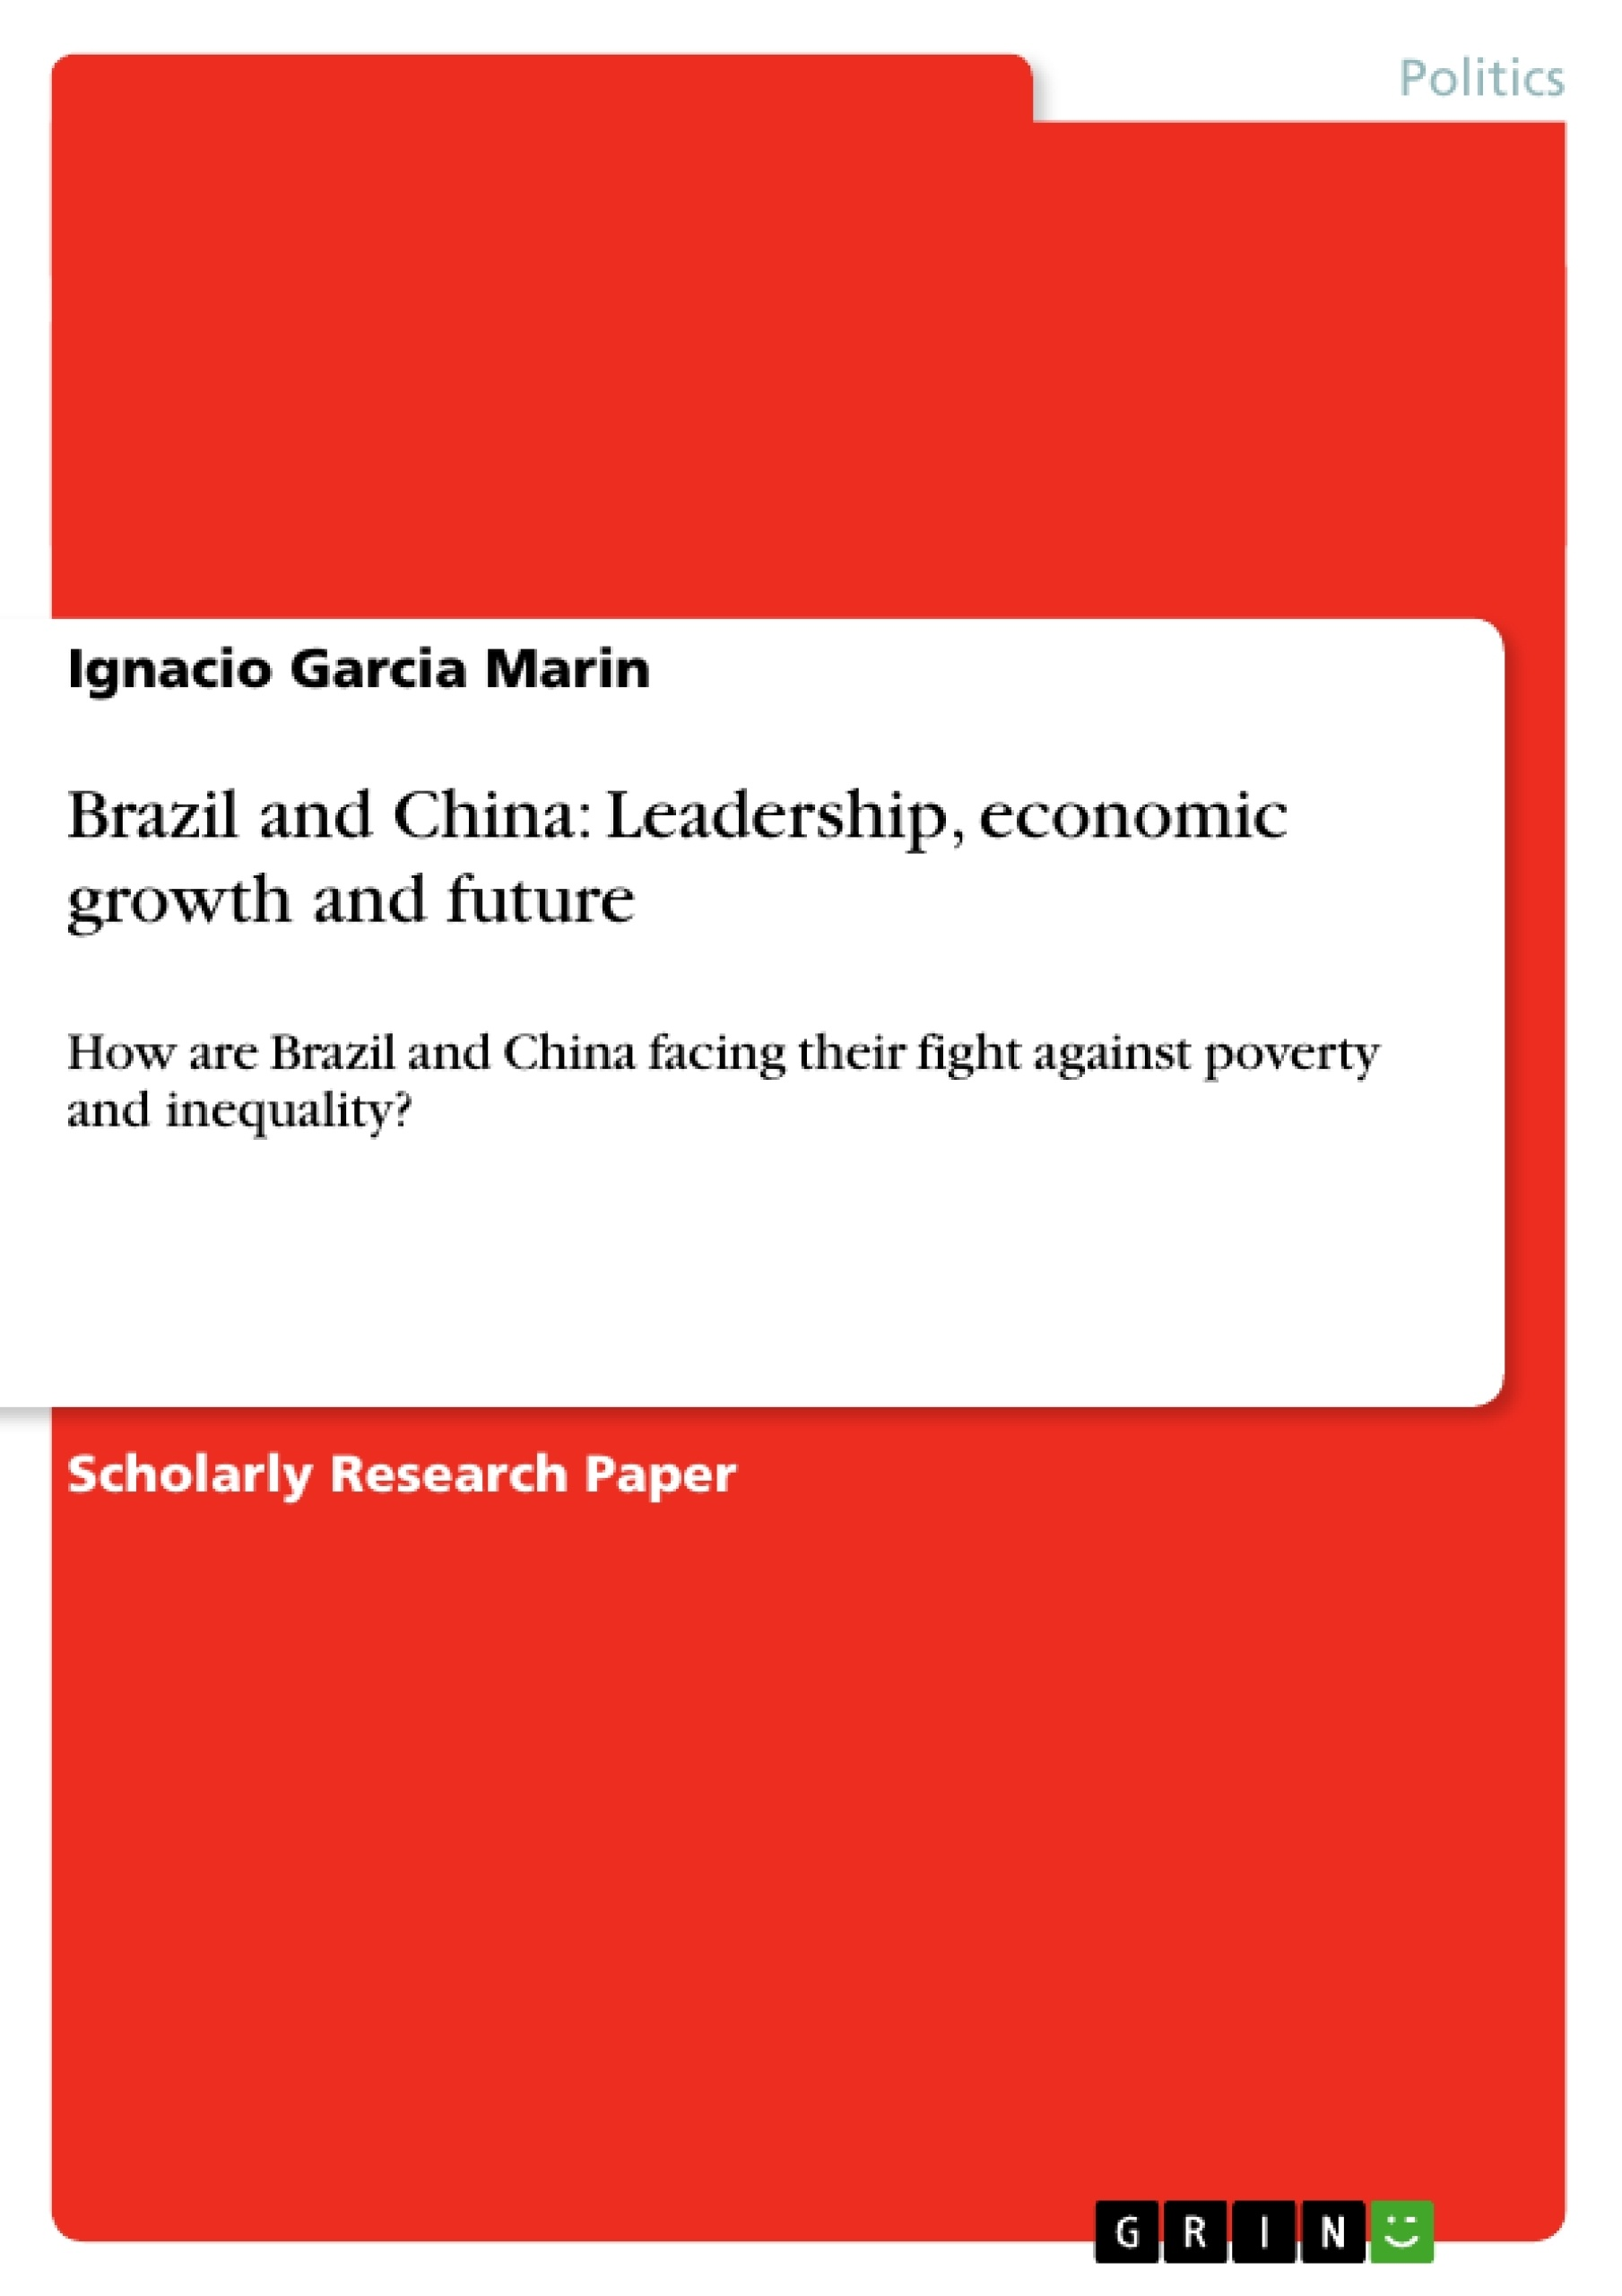 Title: Brazil and China: Leadership, economic growth and future